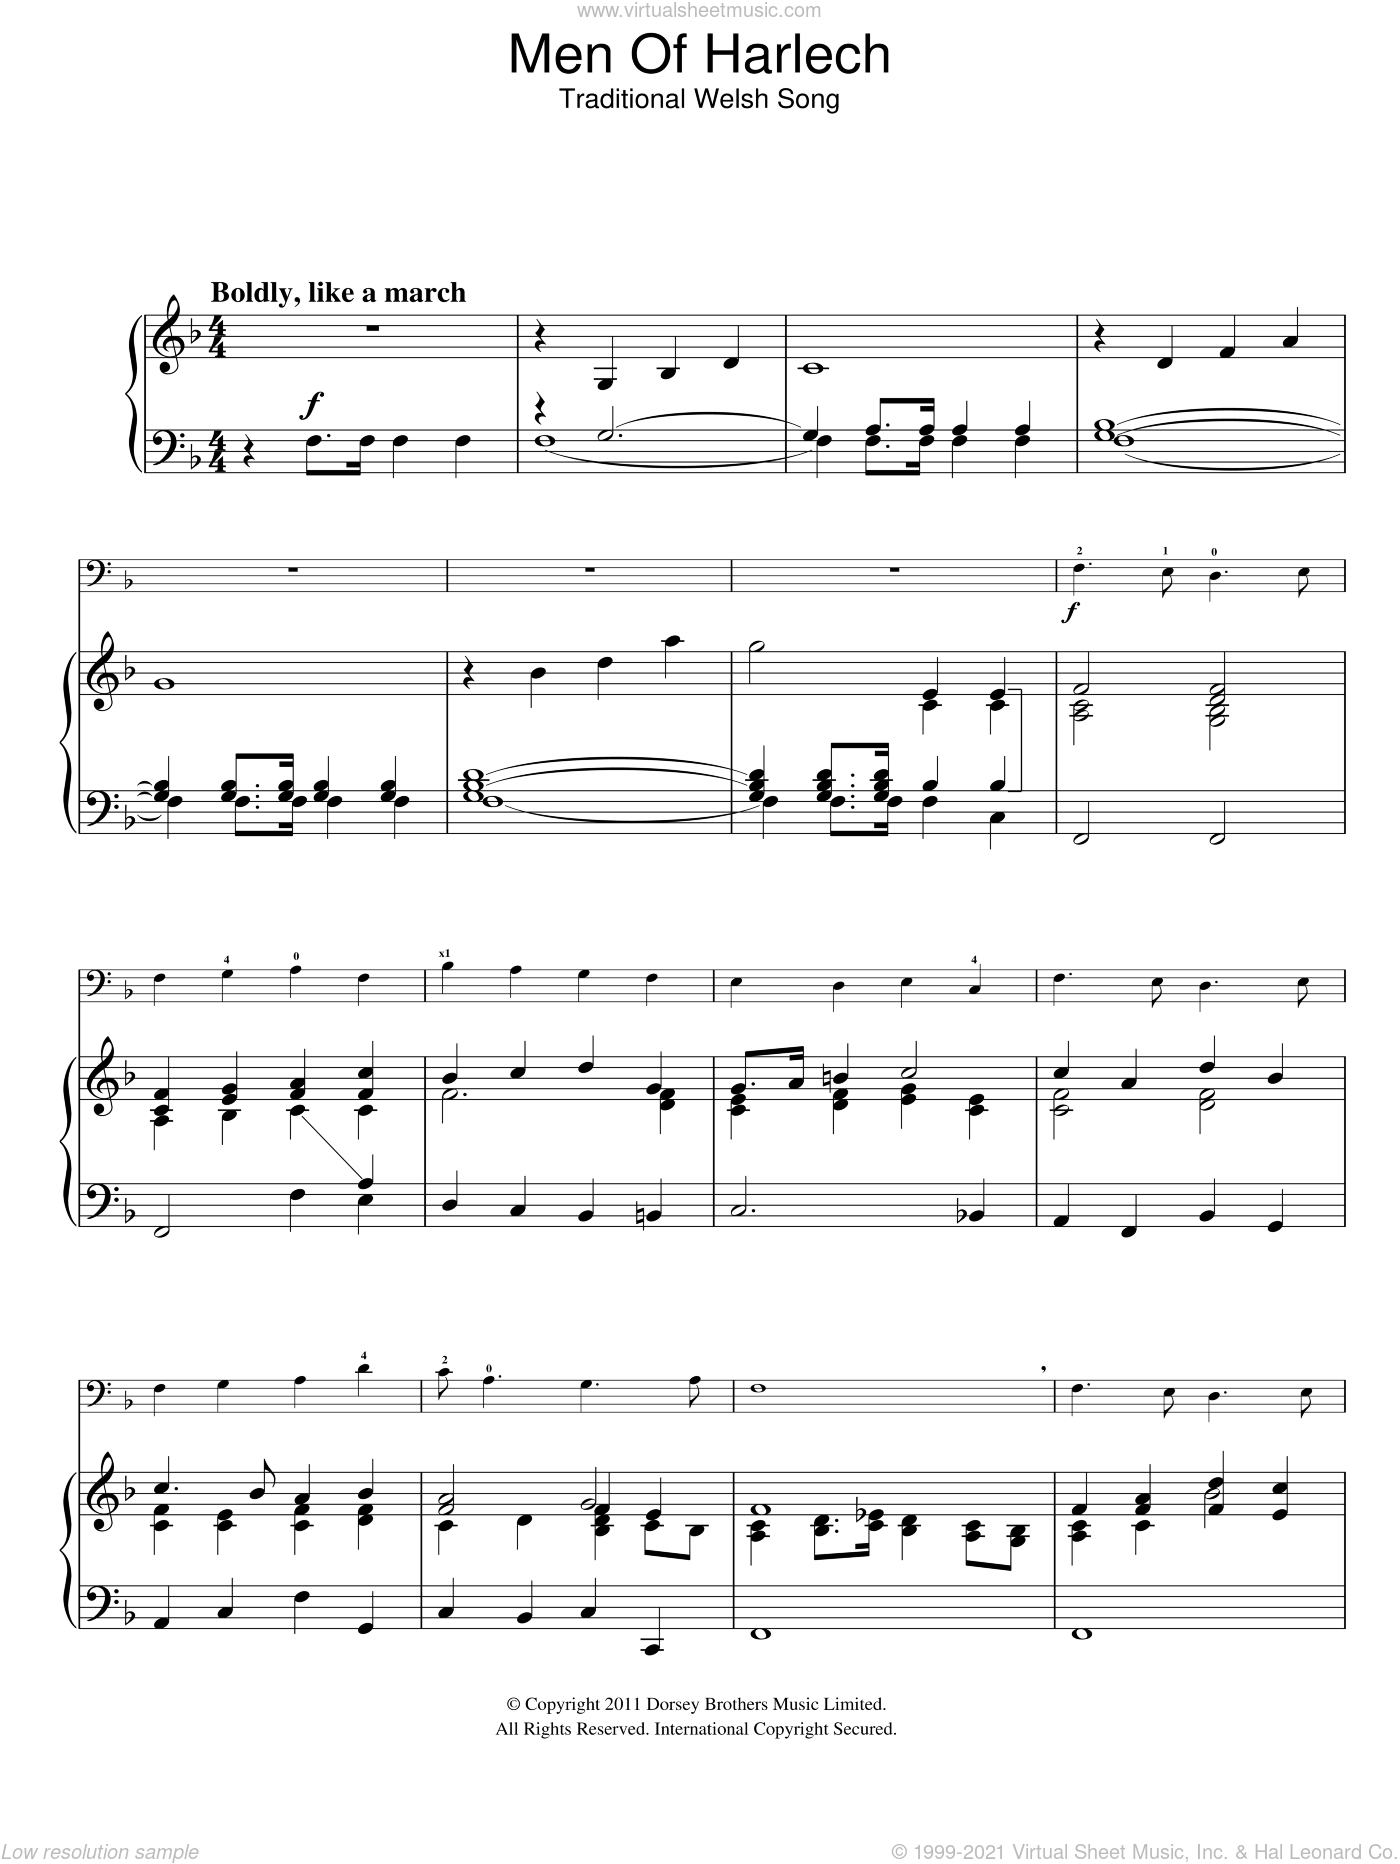 Men Of Harlech sheet music for voice, piano or guitar by Traditional Welsh Song. Score Image Preview.